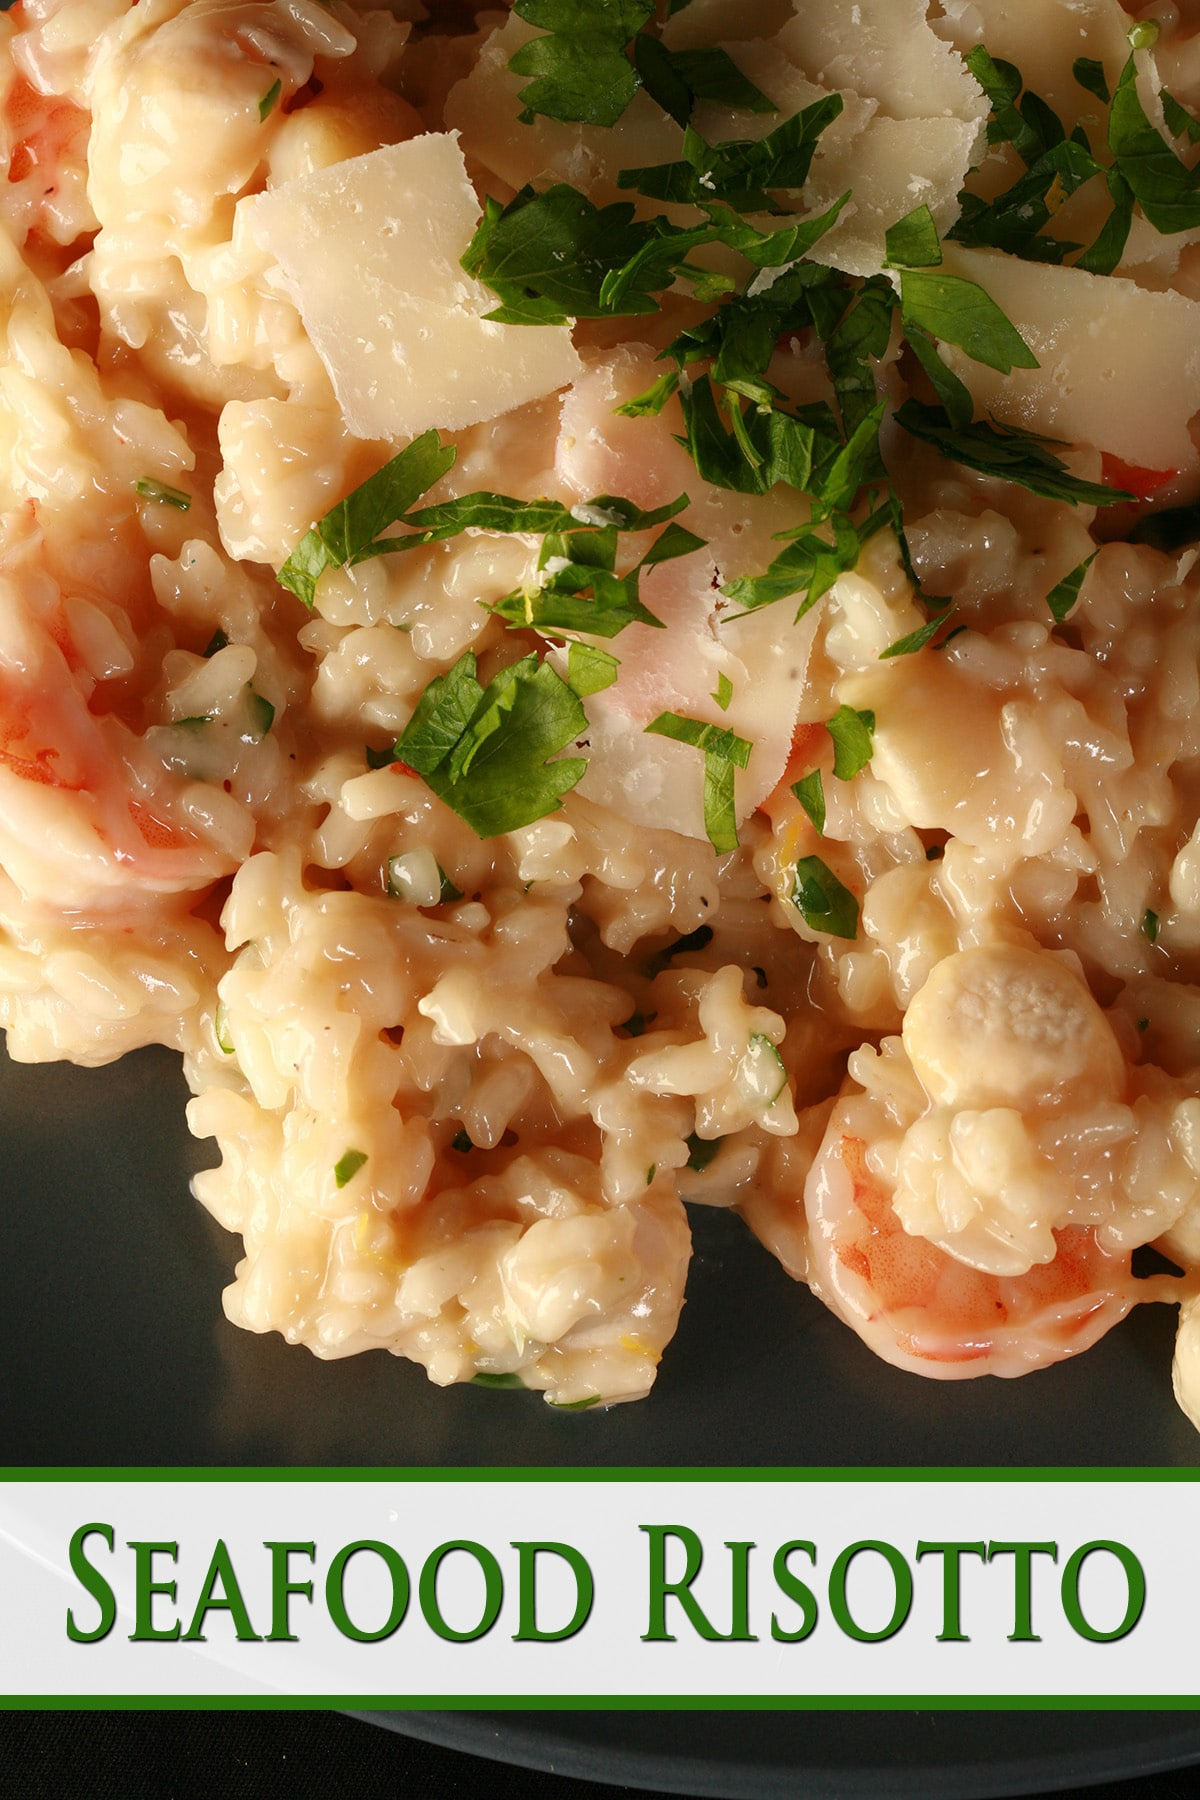 A close up view of seafood risotto on a plate. The top is scattered with chopped parsley and big flakes of Parmesan cheese.